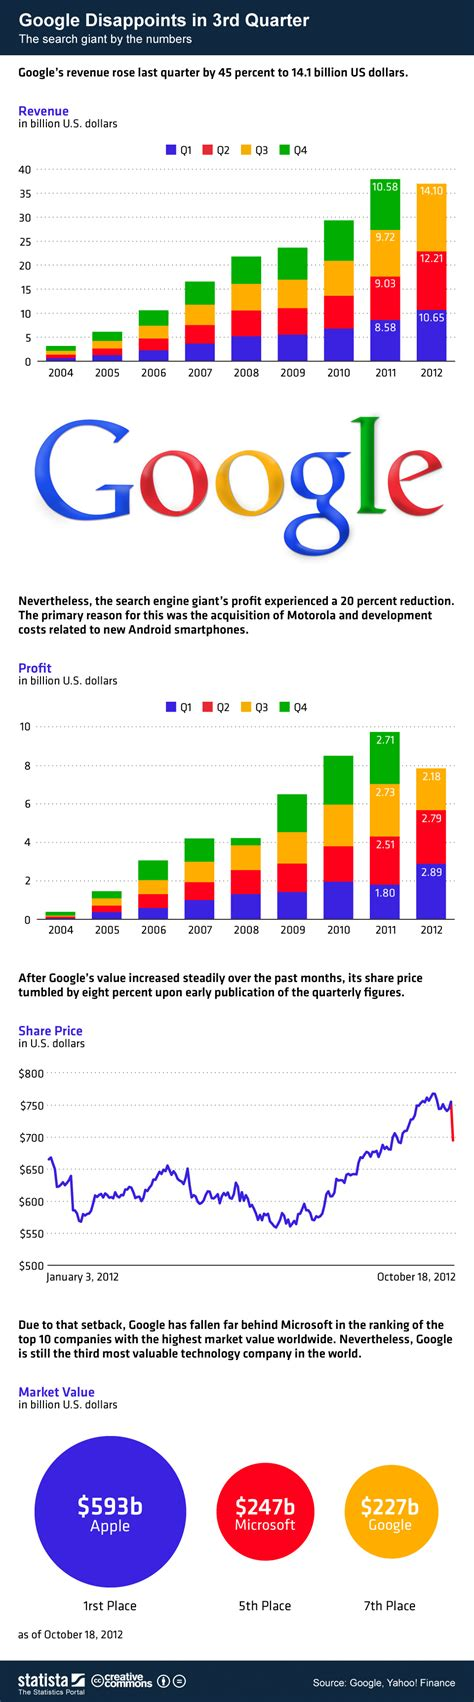 google images infographic chart google disappoints in 3rd quarter statista